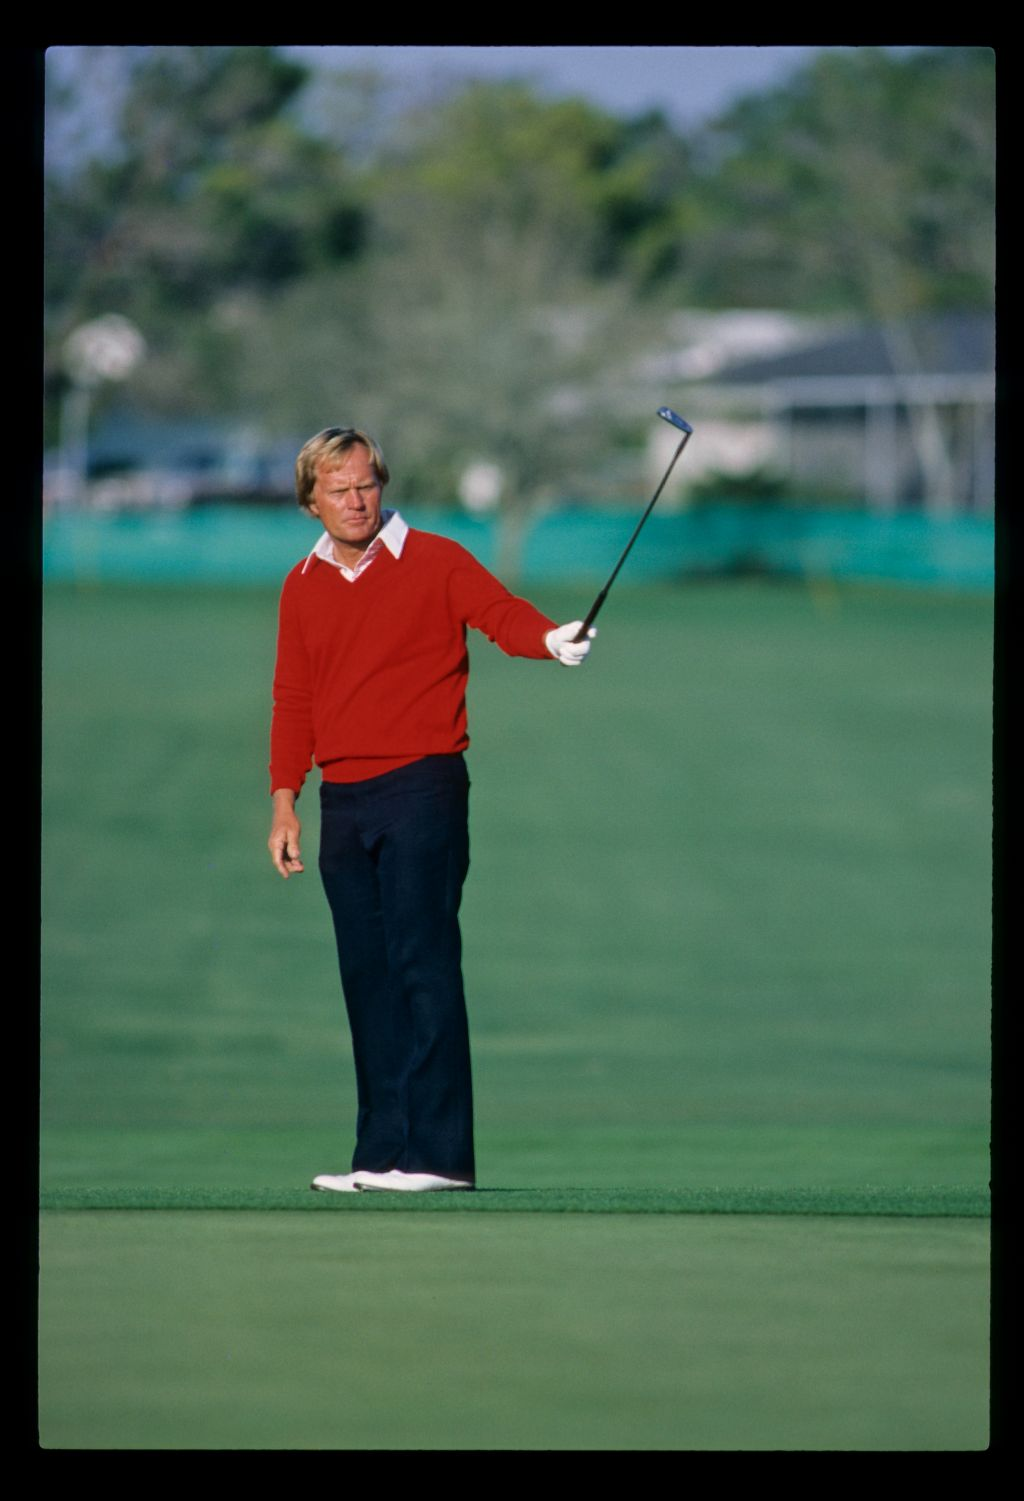 Jack Nicklaus pointing his putter at the hole while putting from the fringe during the 1983 Bay Hill Classic